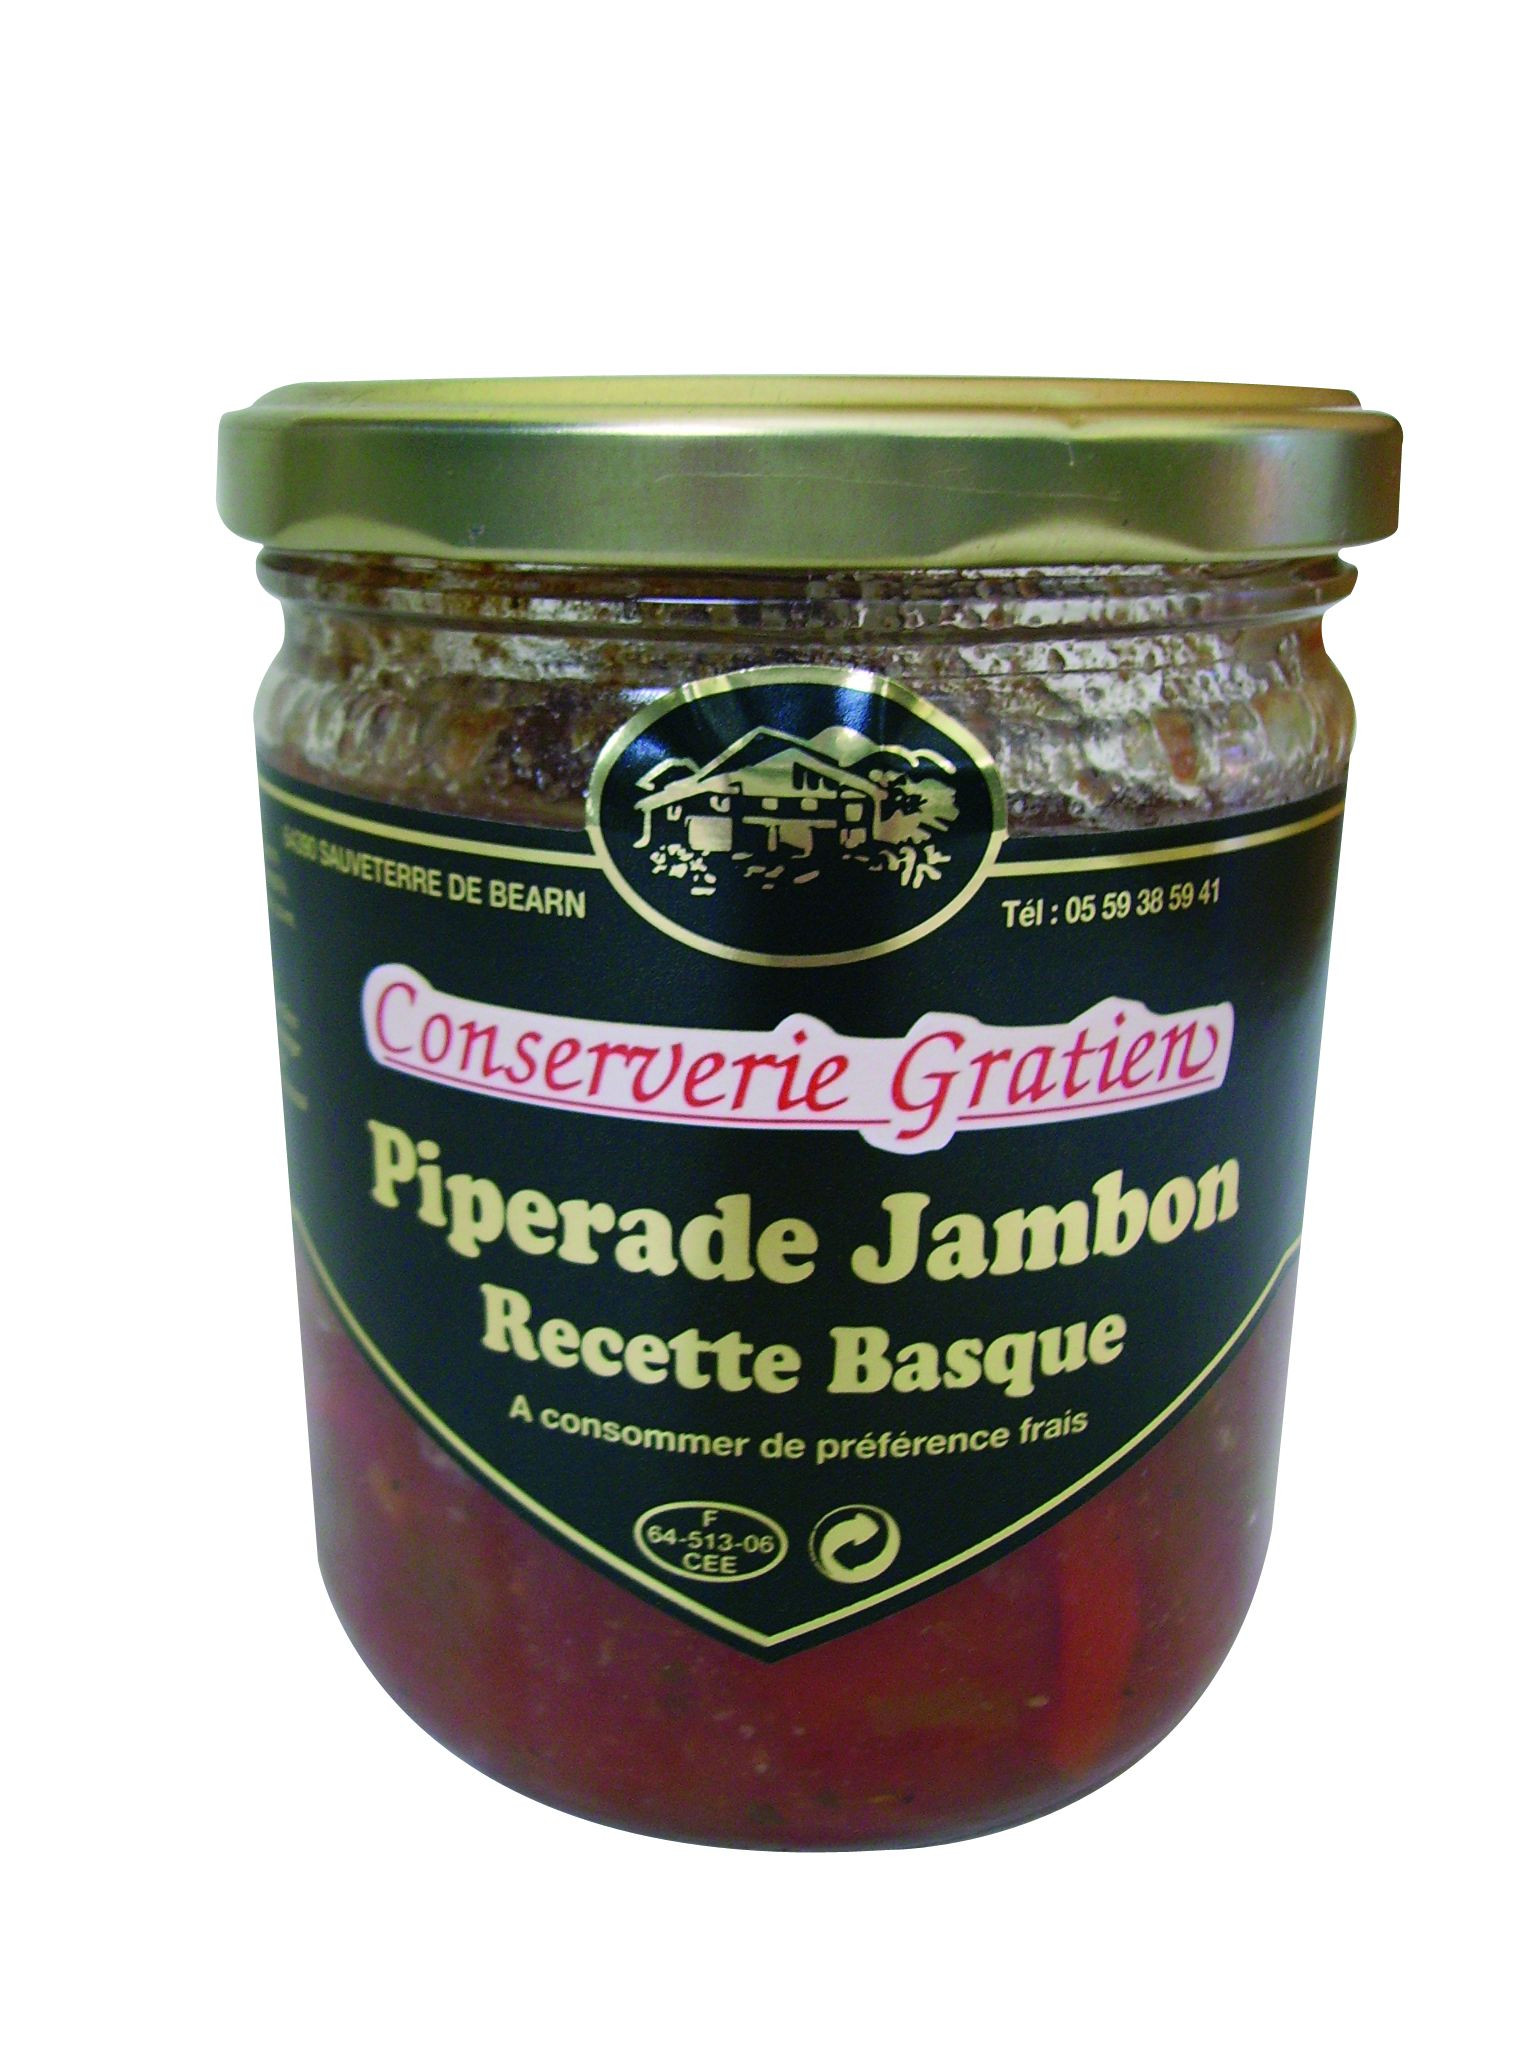 Piperade au jambon